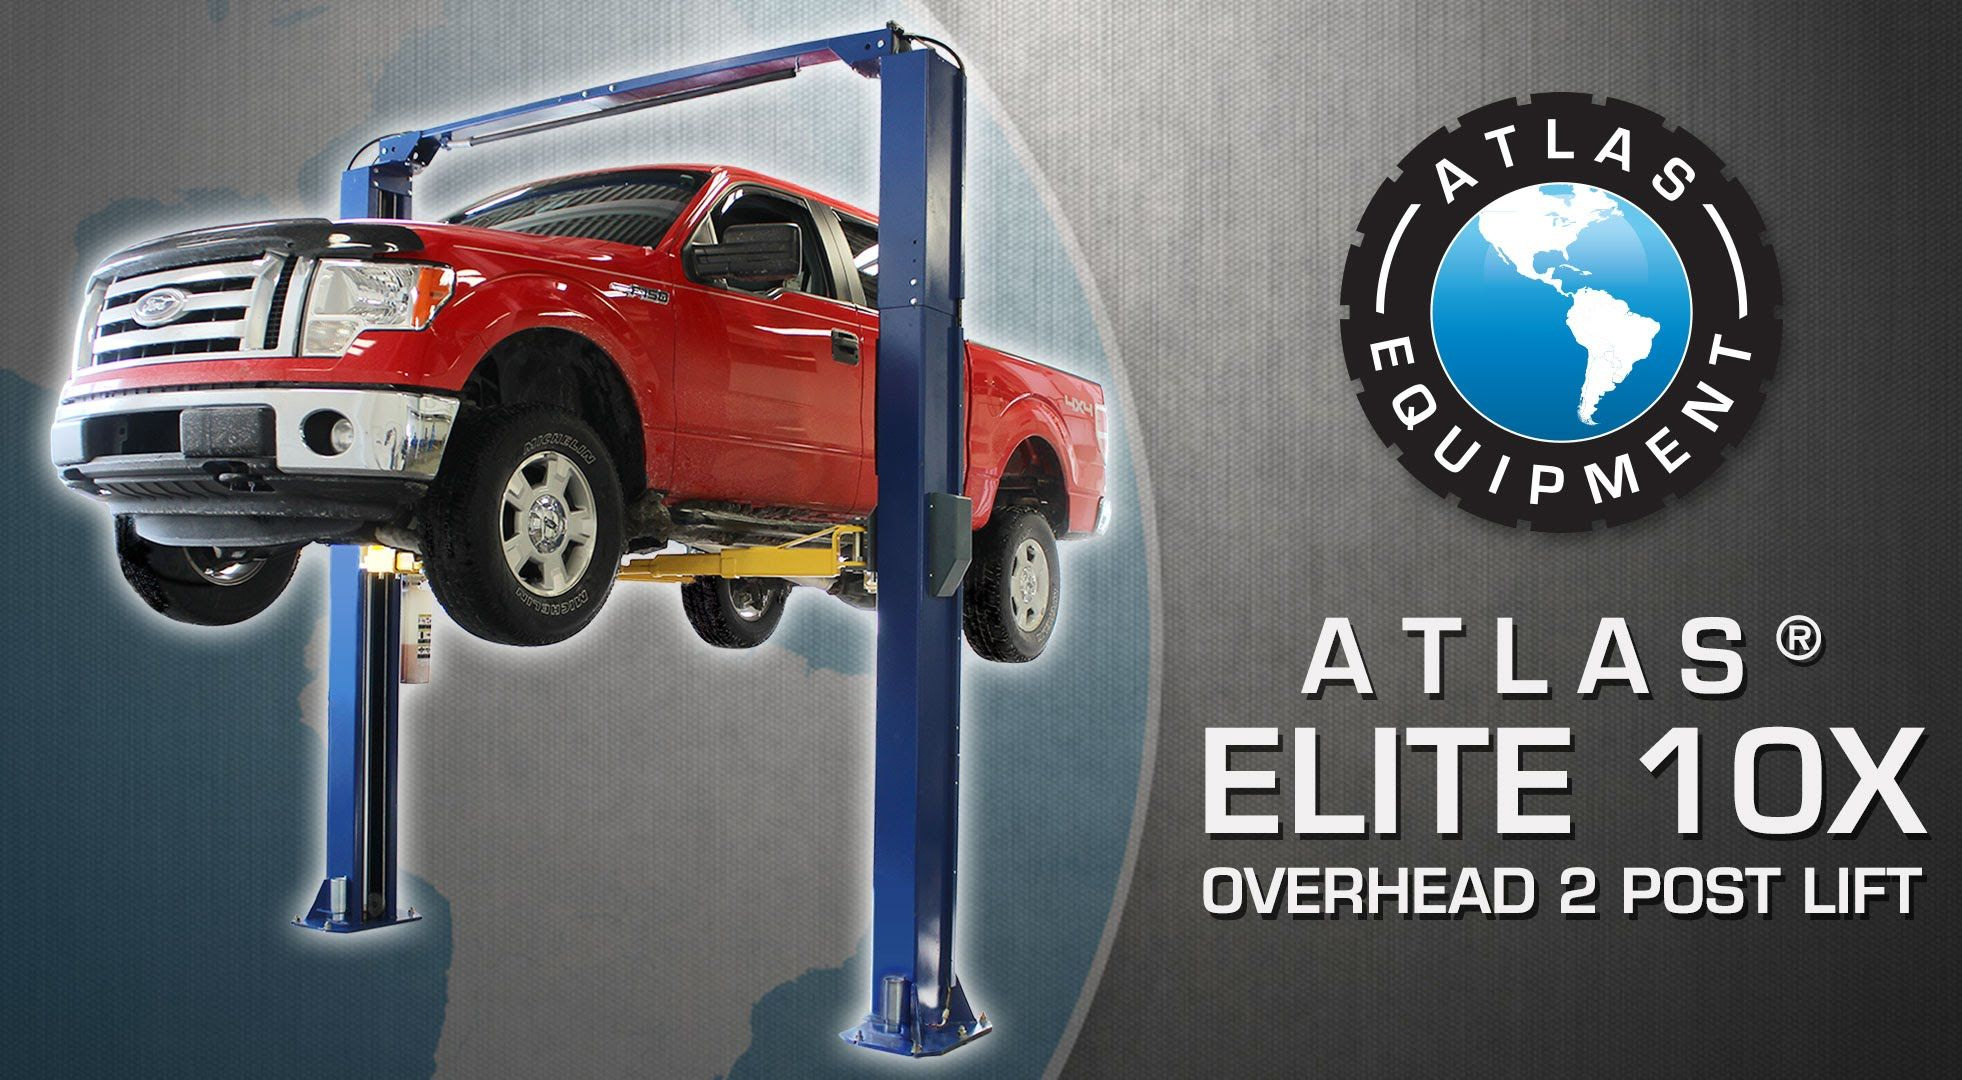 Pin by Greg Smith on Auto Equipment | Two post lift, Garage